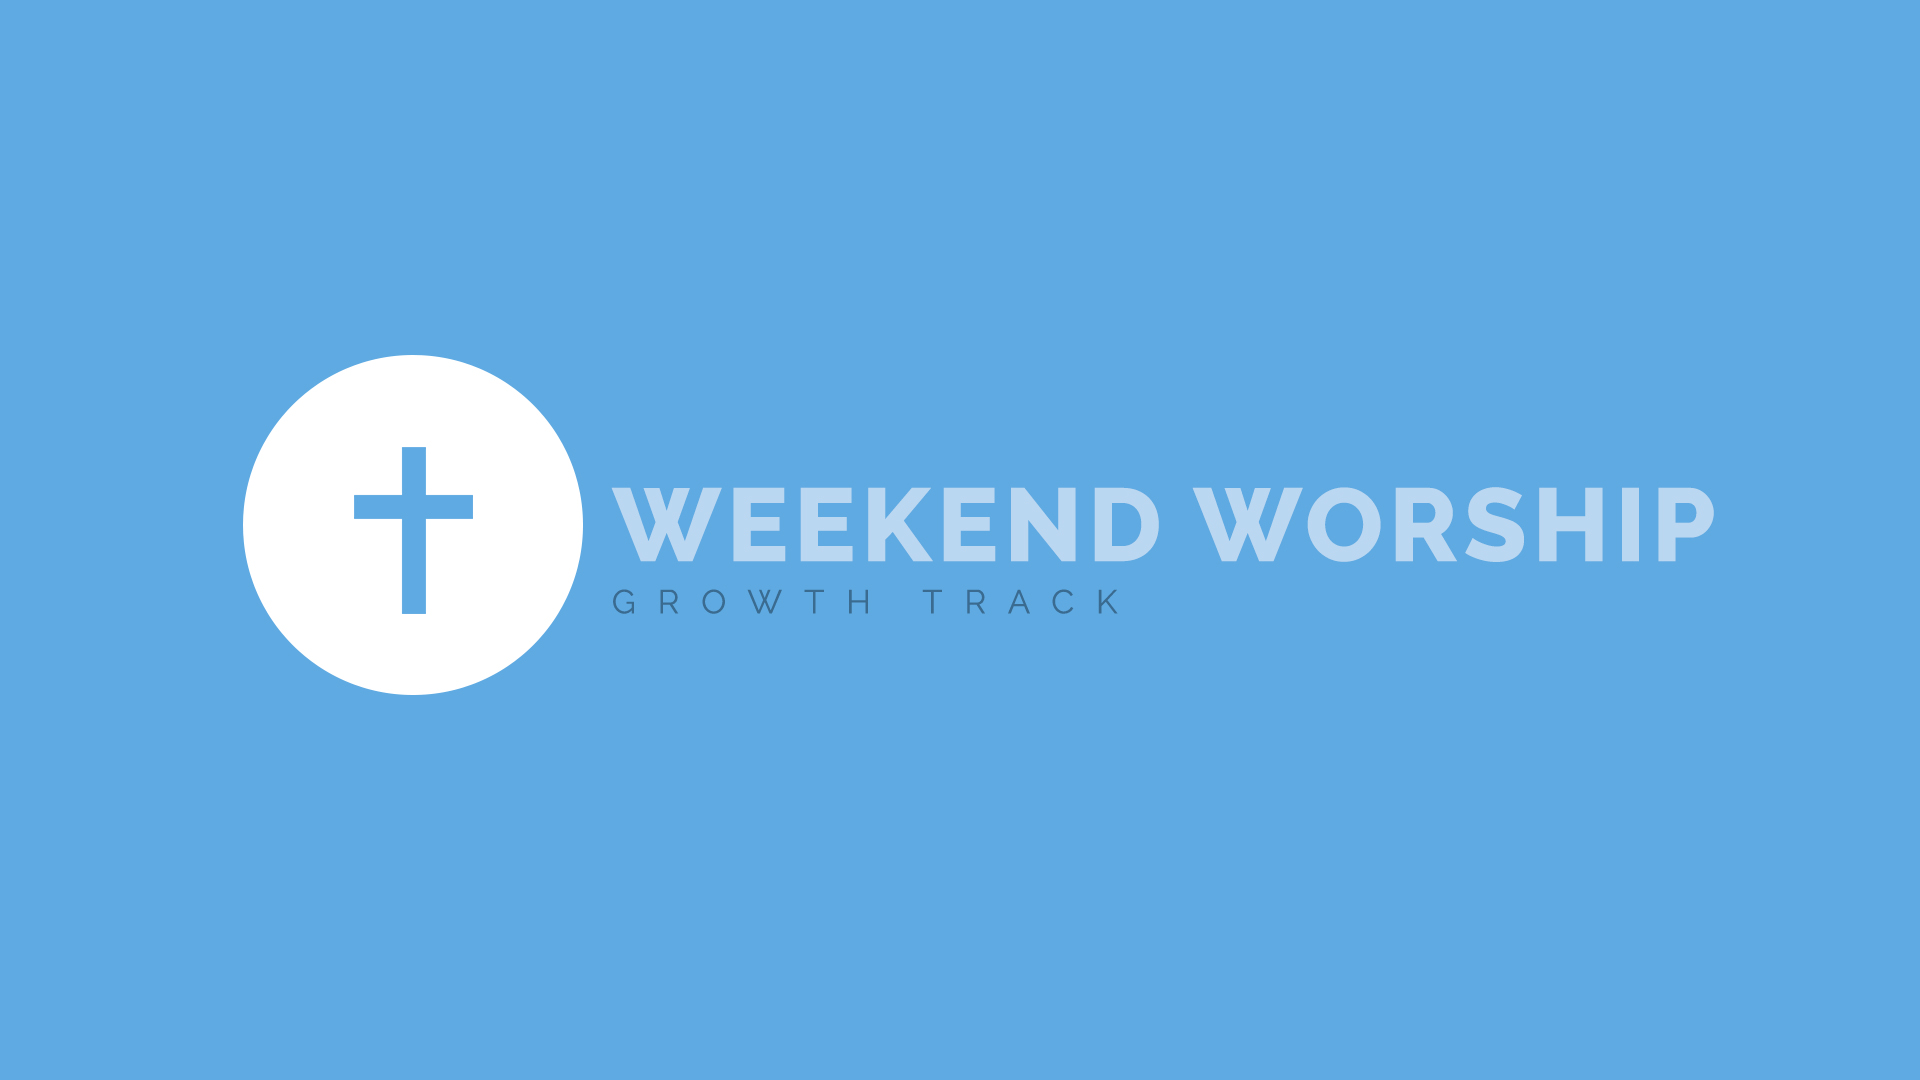 Weekend Worship - If you're new to PDX First it's likely your first experience was through our weekend worship service. So much goes into creating an atmosphere of hospitality and growth. This is a great way to begin volunteering and helping to continue a culture of love and expectance we long to known for.Click here